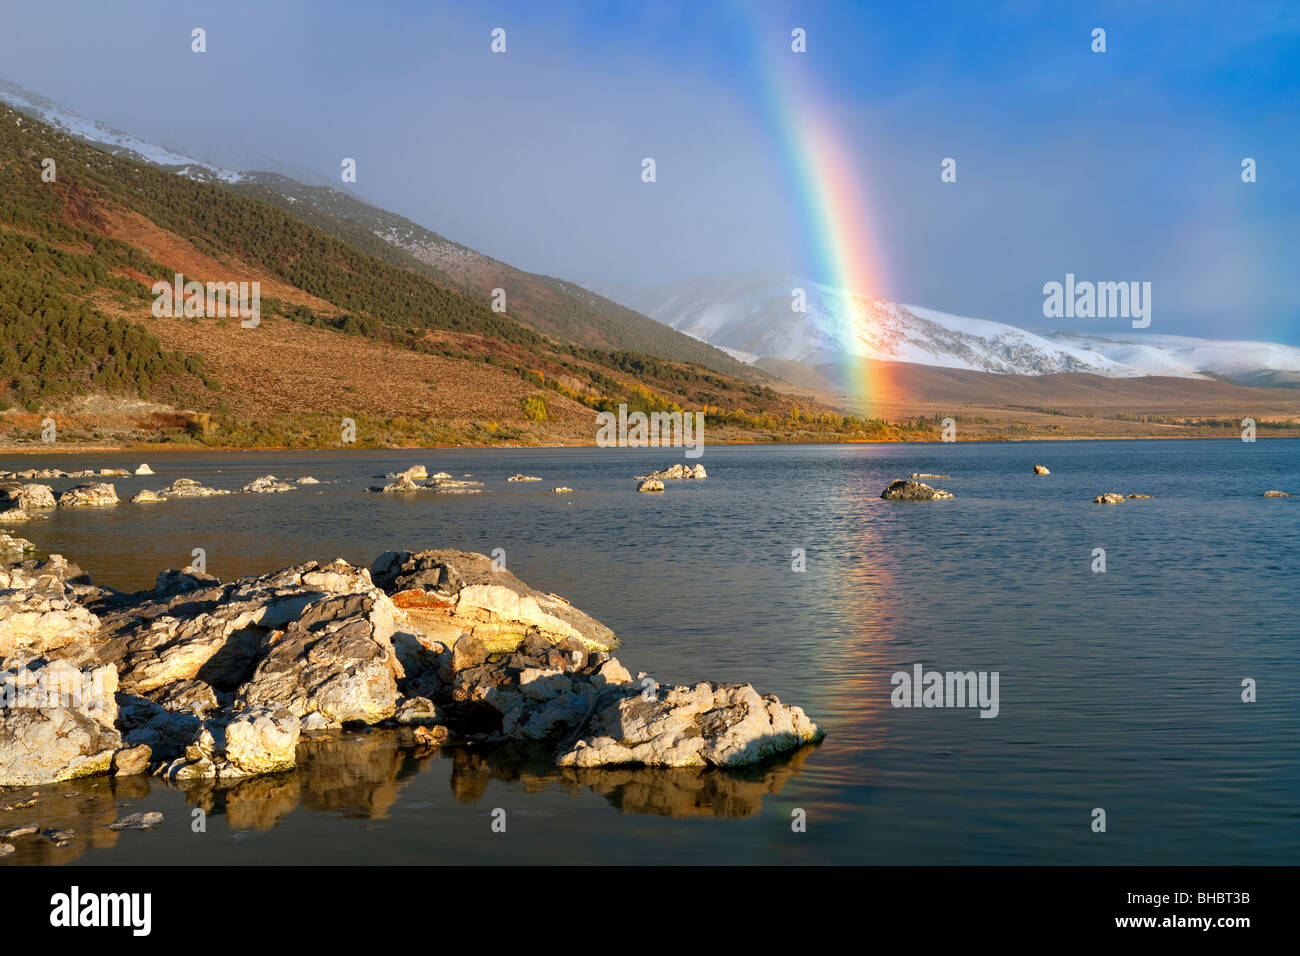 Rainbow with reflection and snow in mountains at Mono Lake. California. - Stock Image